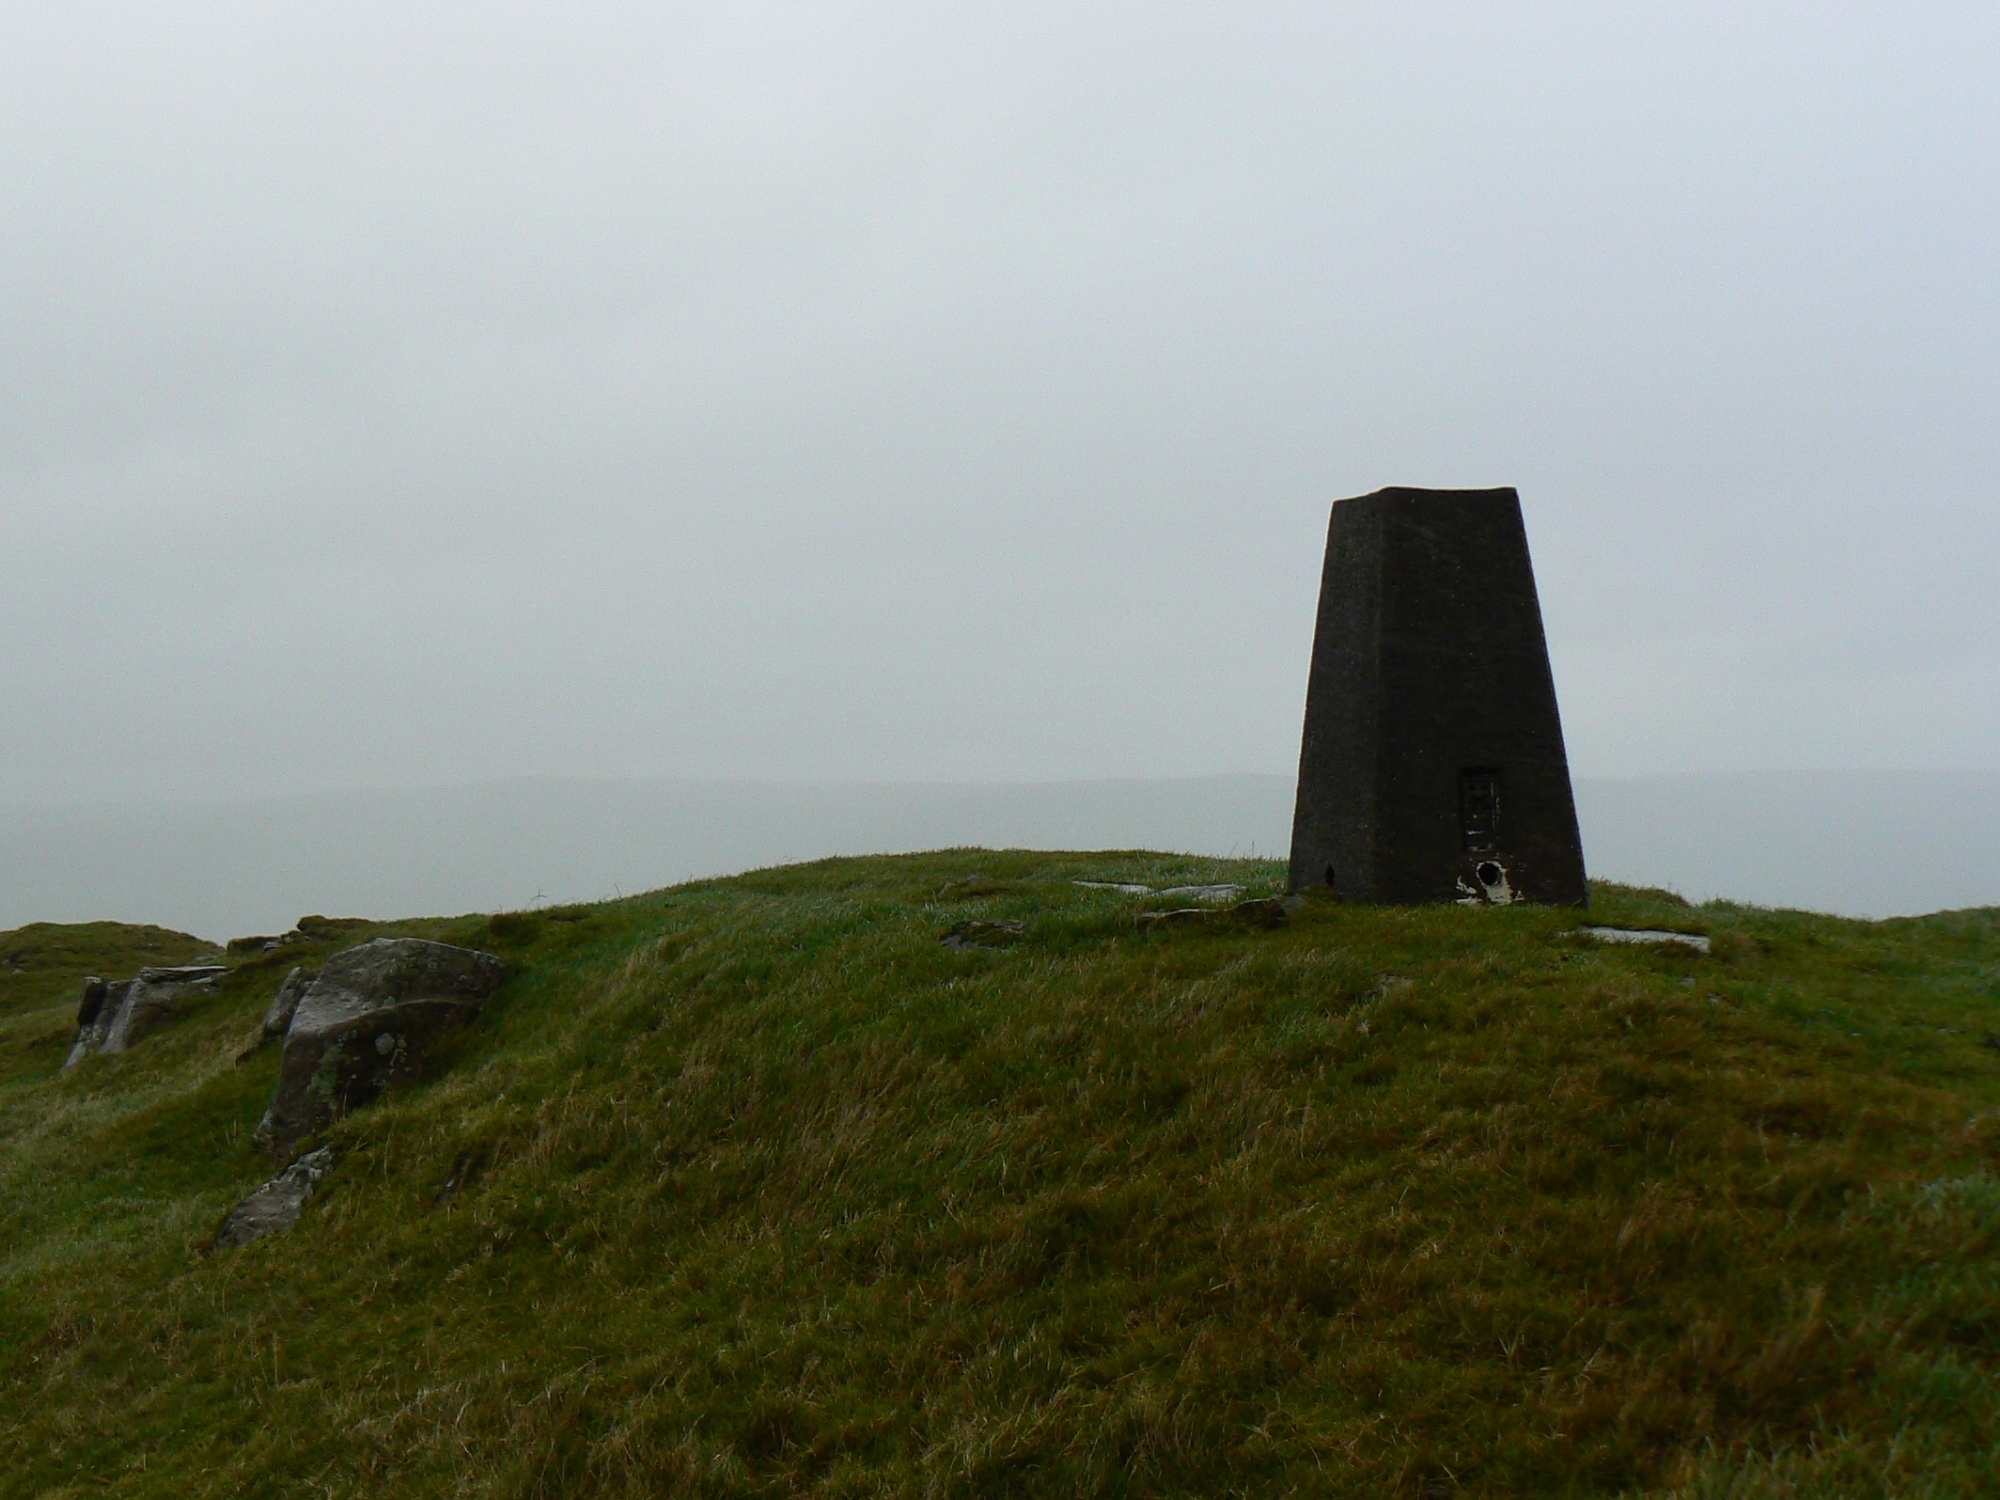 Haw Pike Trig Point